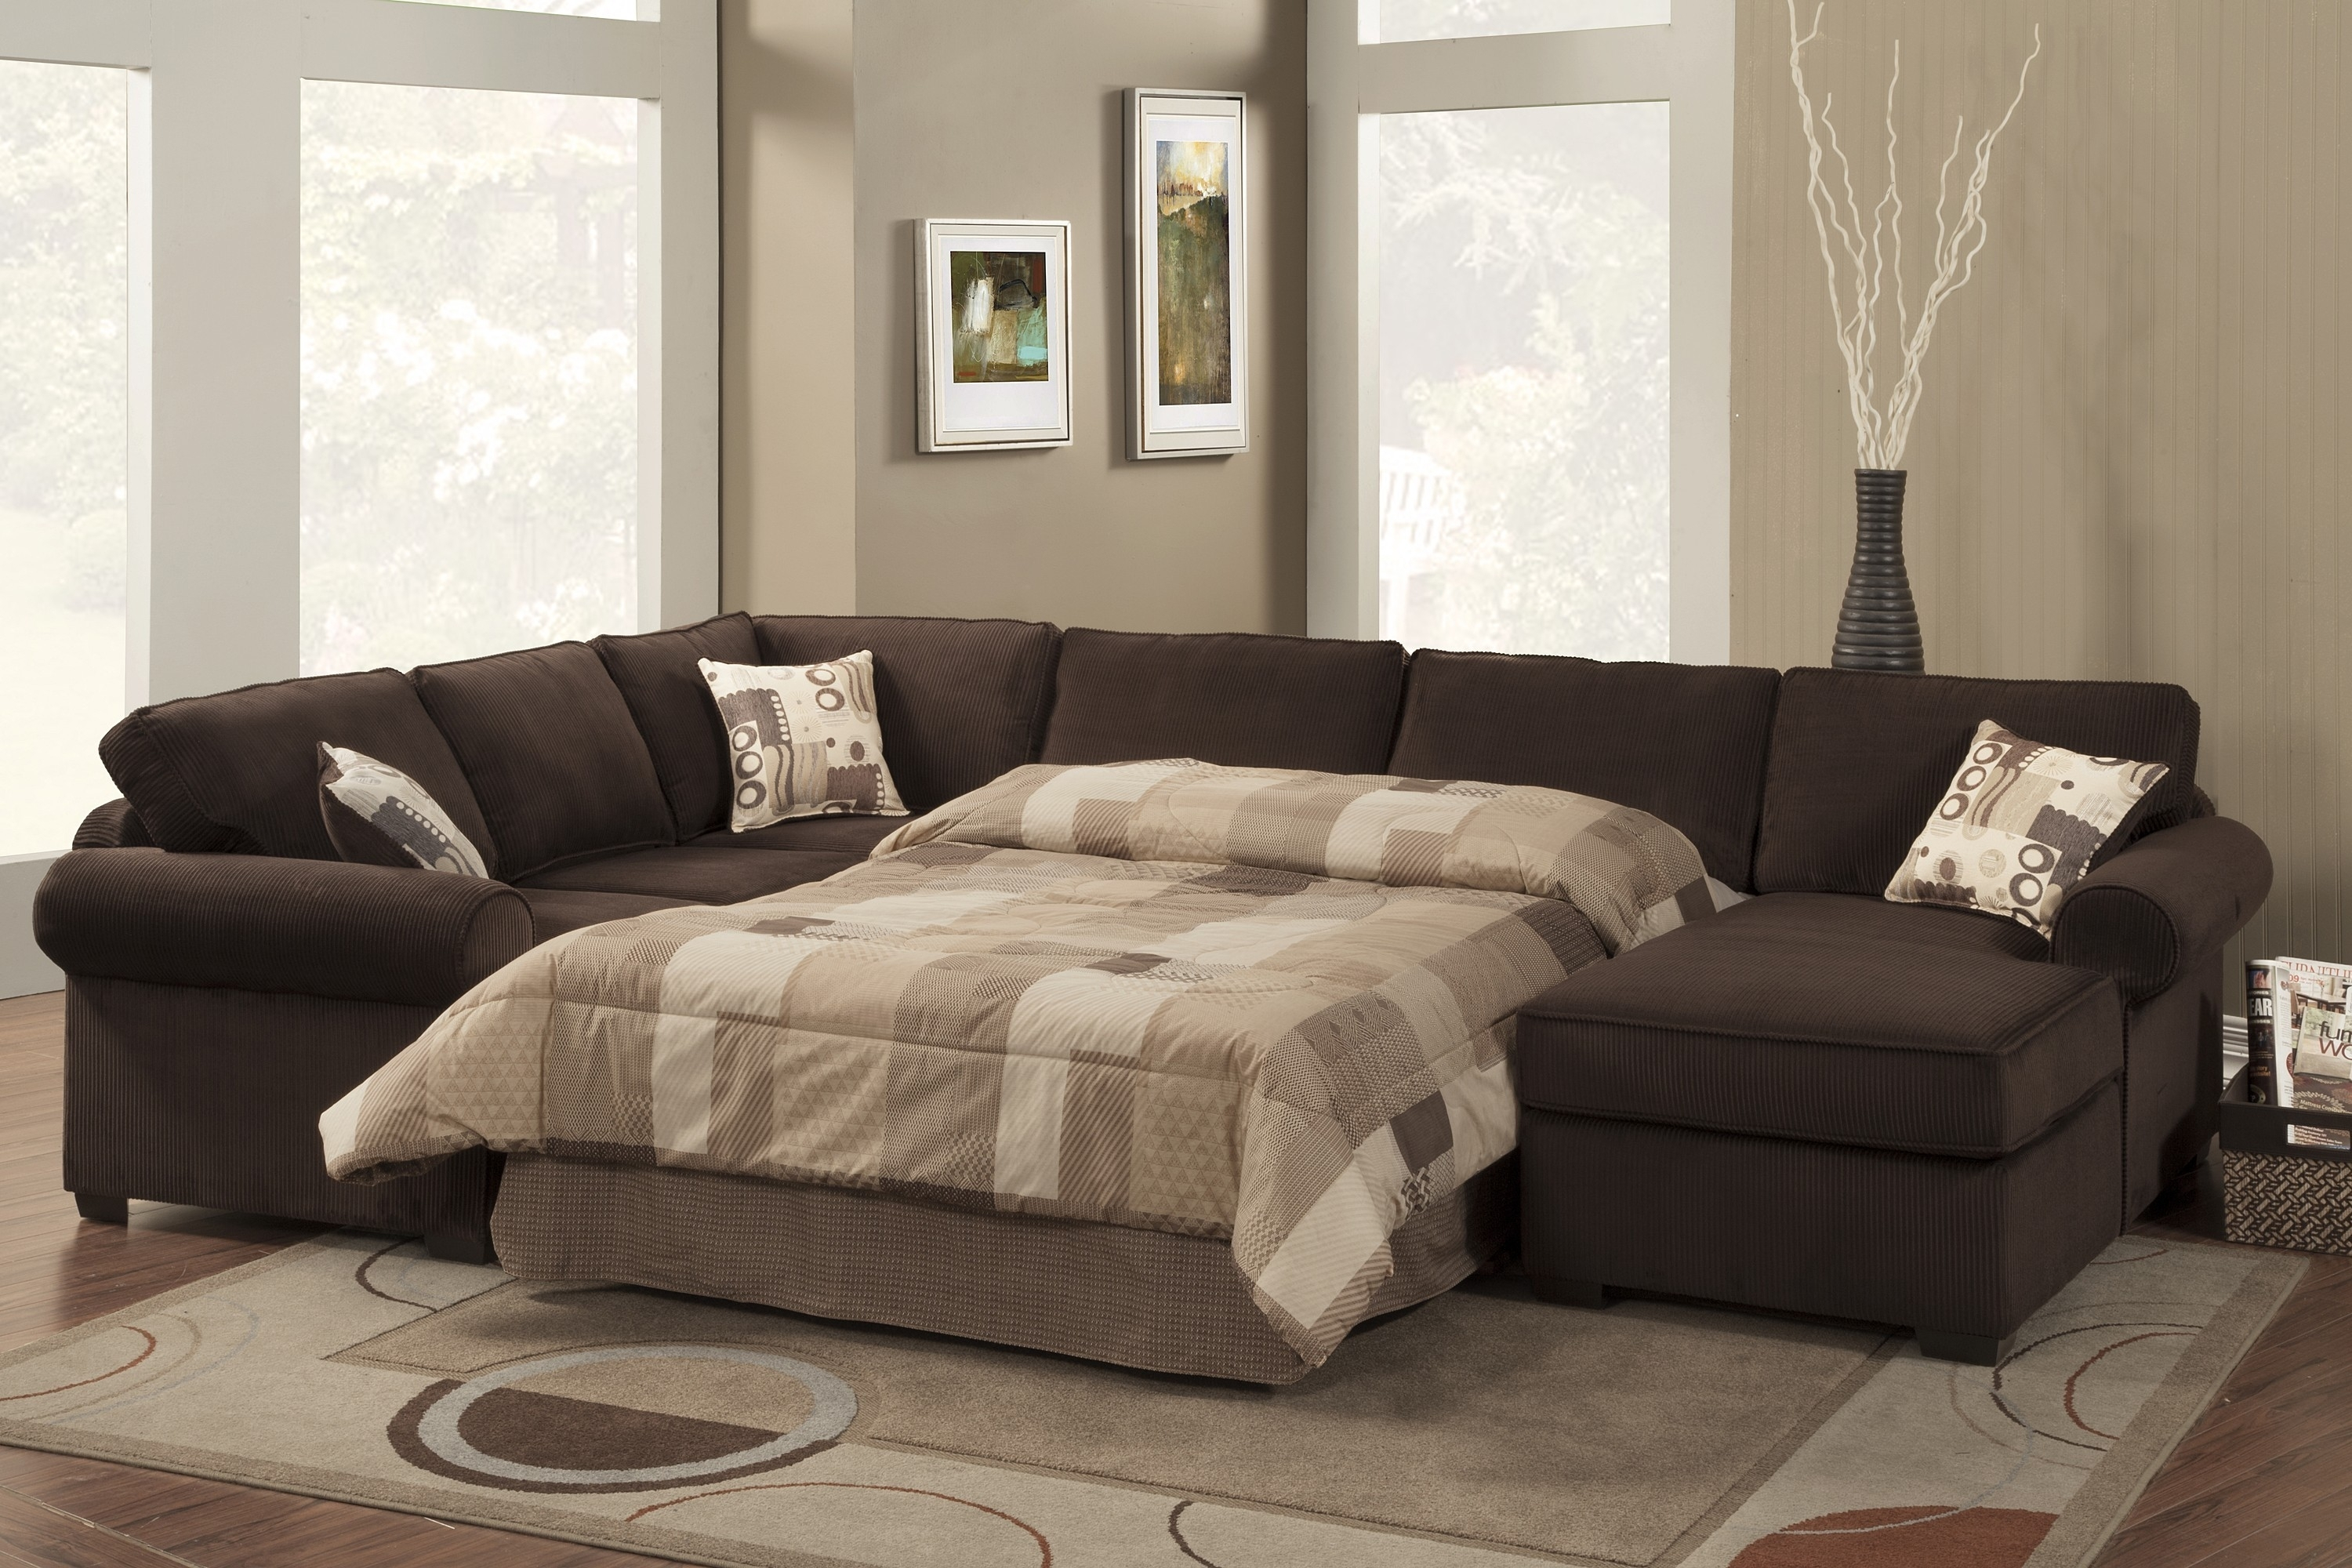 Chandler Benton – Erwinmiradi within Benton 4 Piece Sectionals (Image 10 of 30)